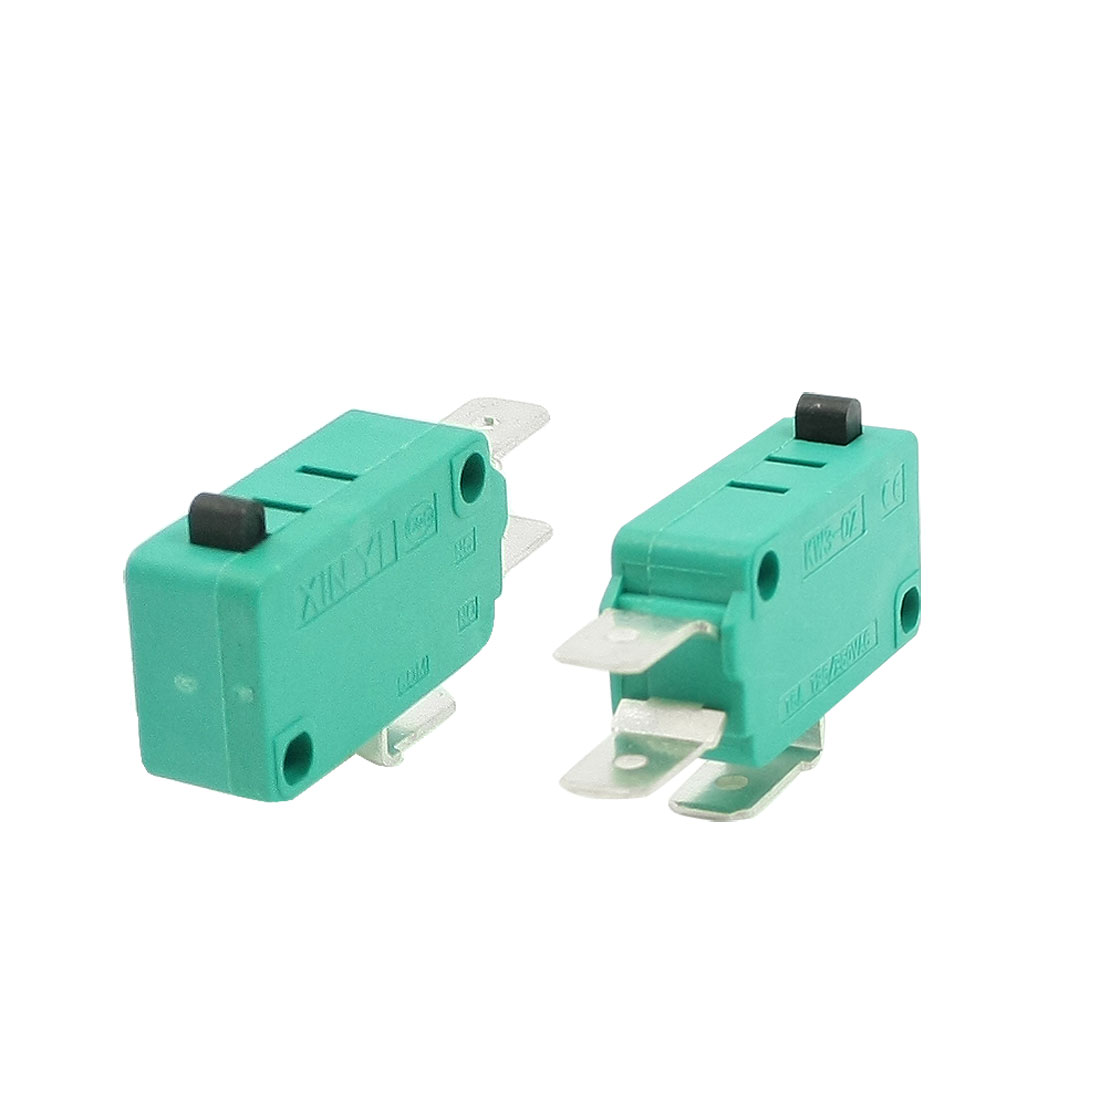 3 Pcs AC 250V 16A SPDT 3-Terminal Momentary Miniature Micro Switch Green